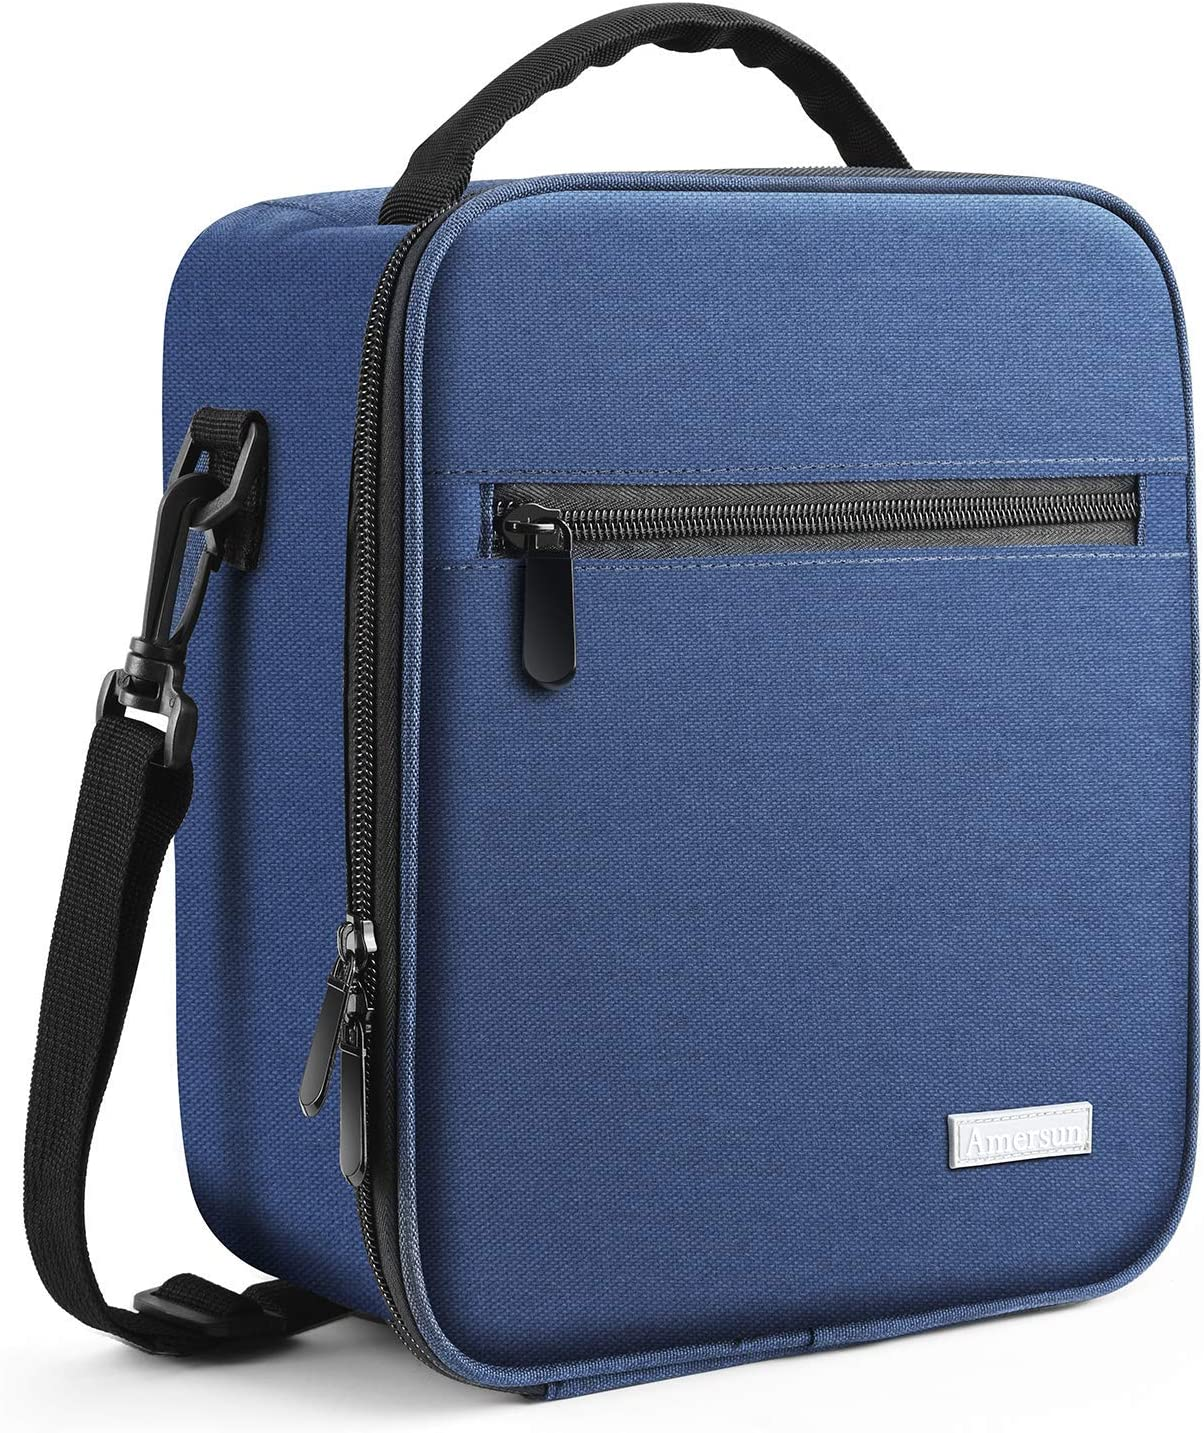 Lunch Bag with Solid Padded Liner,Amersun Spacious Insulated Lunch Box Durable Thermal Lunch Cooler Pack Organizer with Strap for Boys Men Women Girls Adults Sport Picnic Camp Beach,2 Pockets(Blue)